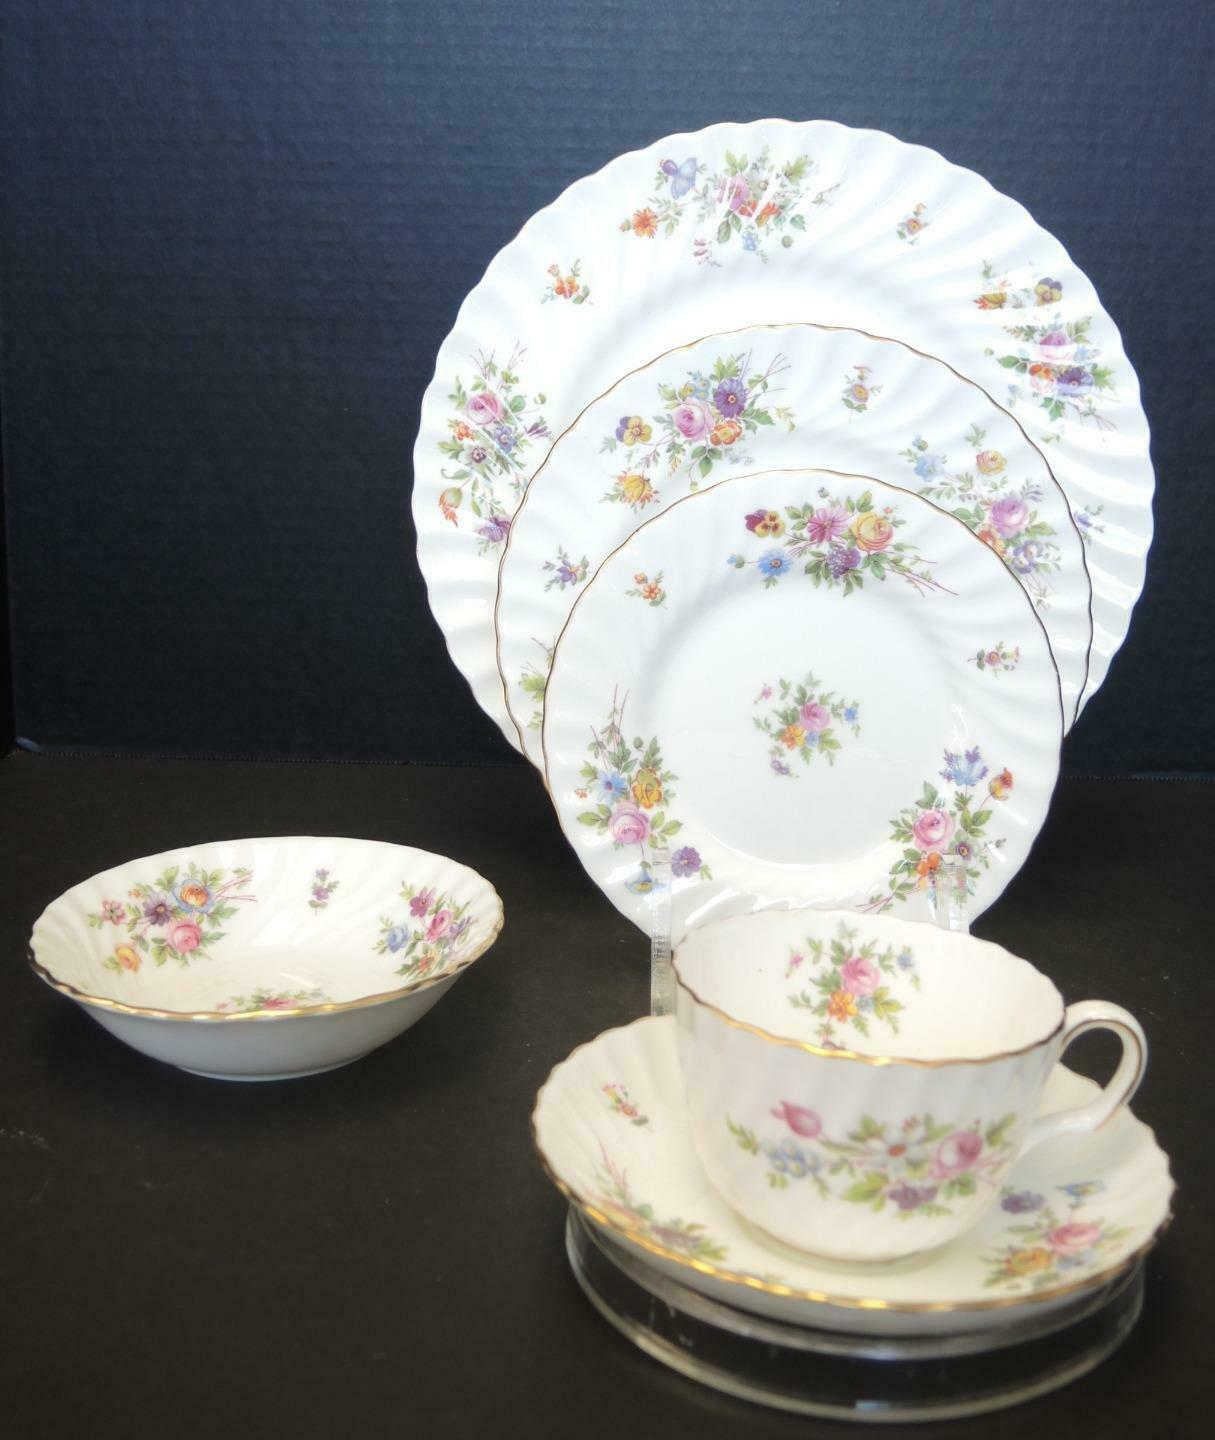 Vintage Minton Marlow Six Piece Place Setting - $37.99